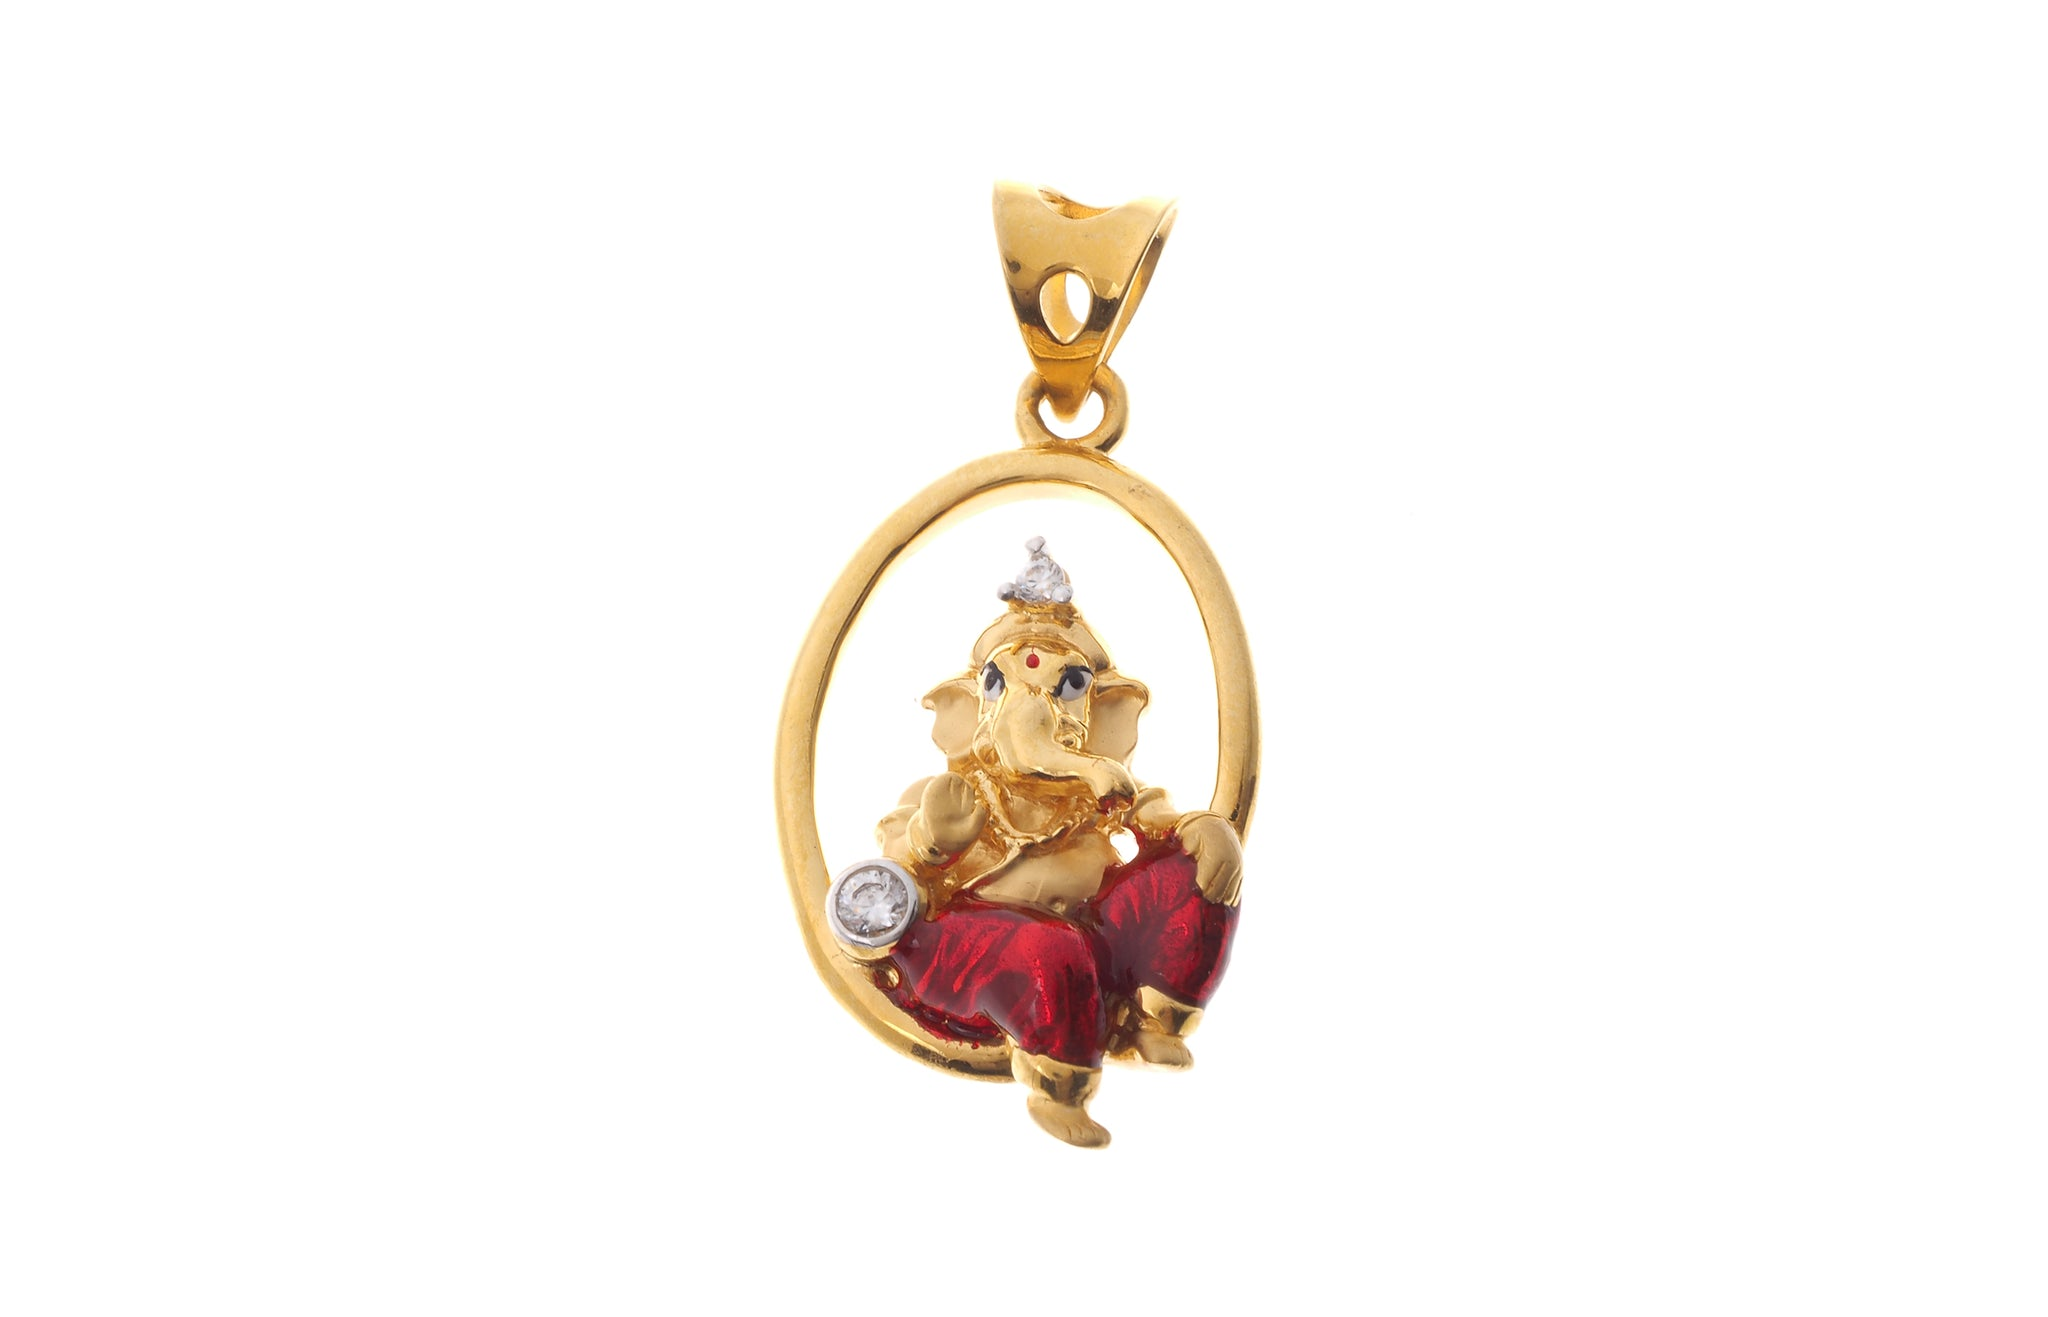 22ct gold cubic zirconia ganesh pendant p 6576 online price only 22ct gold cubic zirconia ganesh pendant p 6576 online price only mozeypictures Images